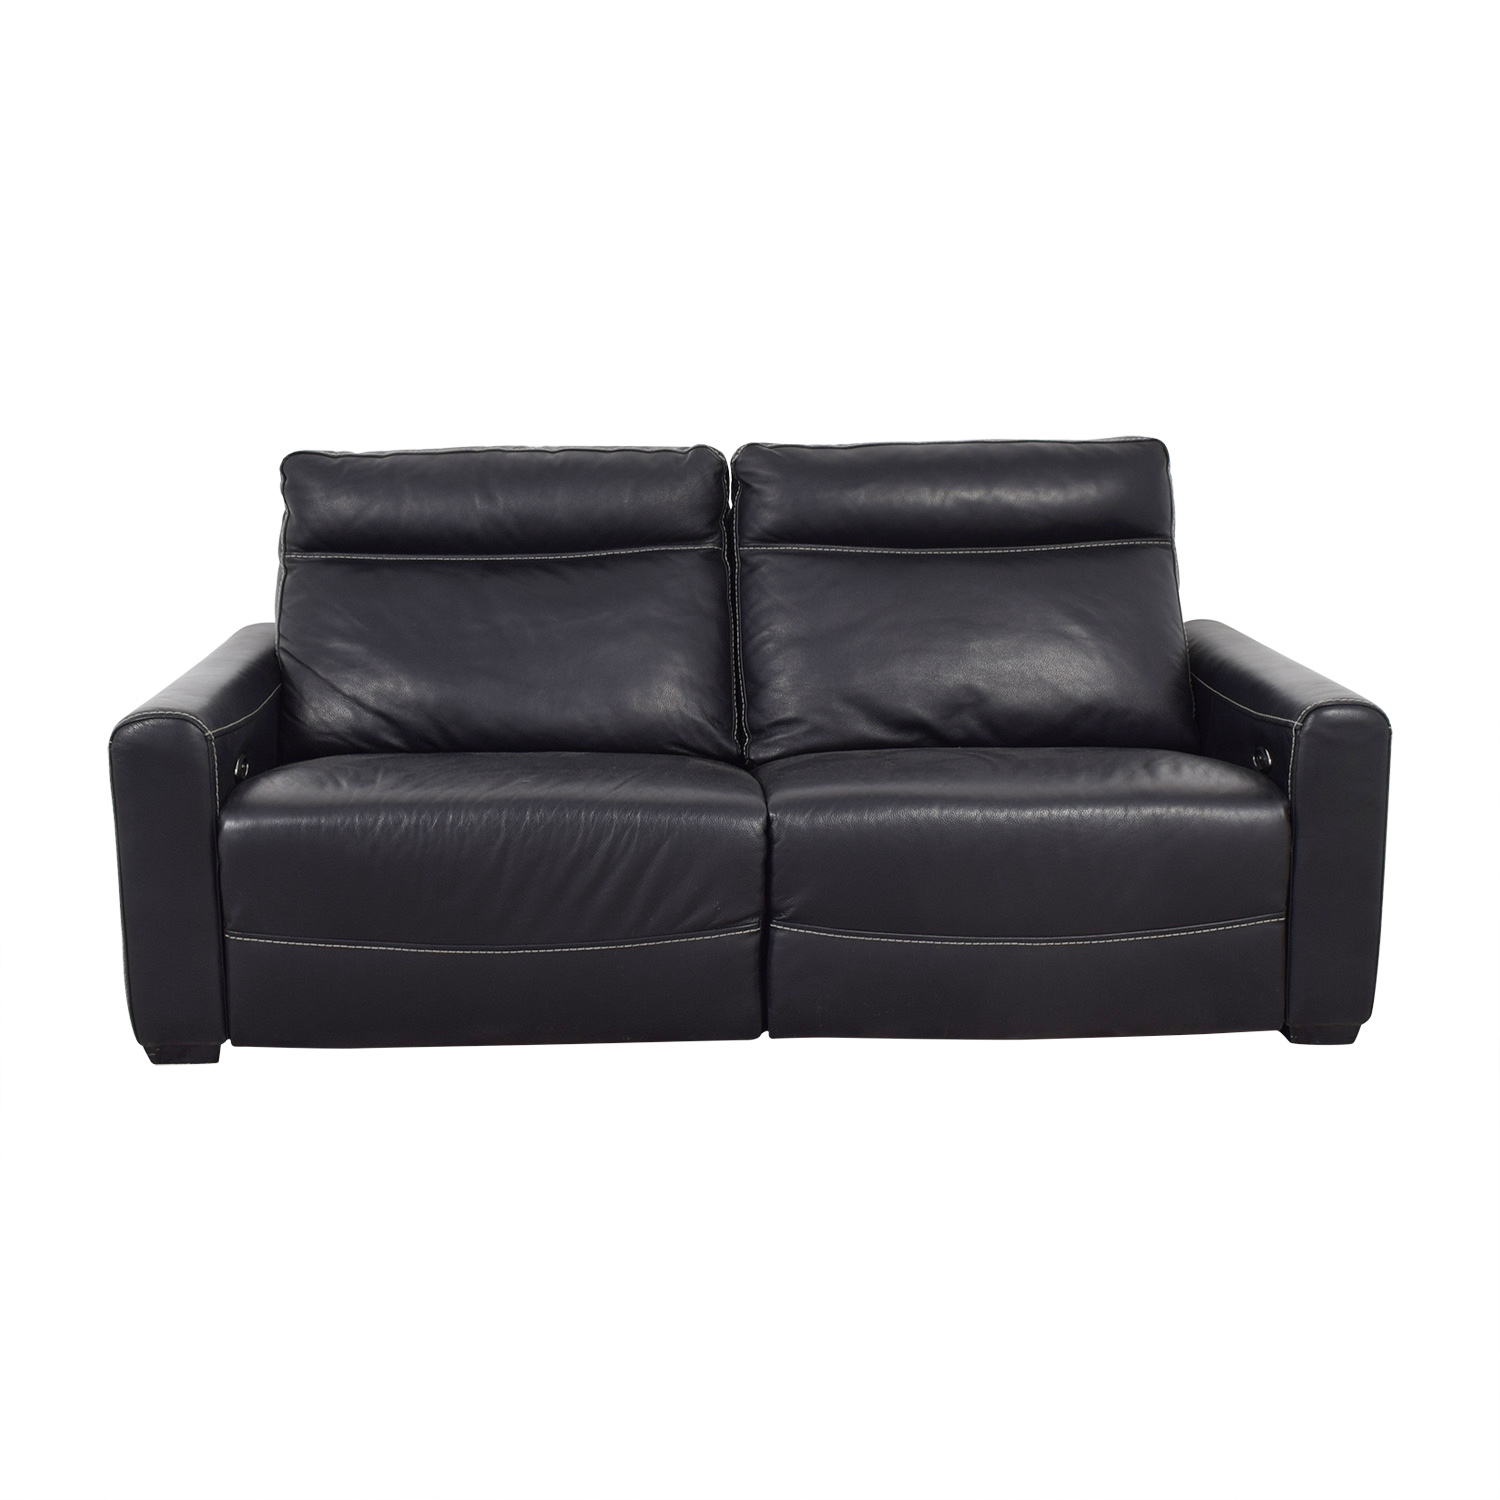 Cheap Recliner Sofas For Sale Black Leather Reclining: Macy's Macy's Black Leather Power Recliner Sofa